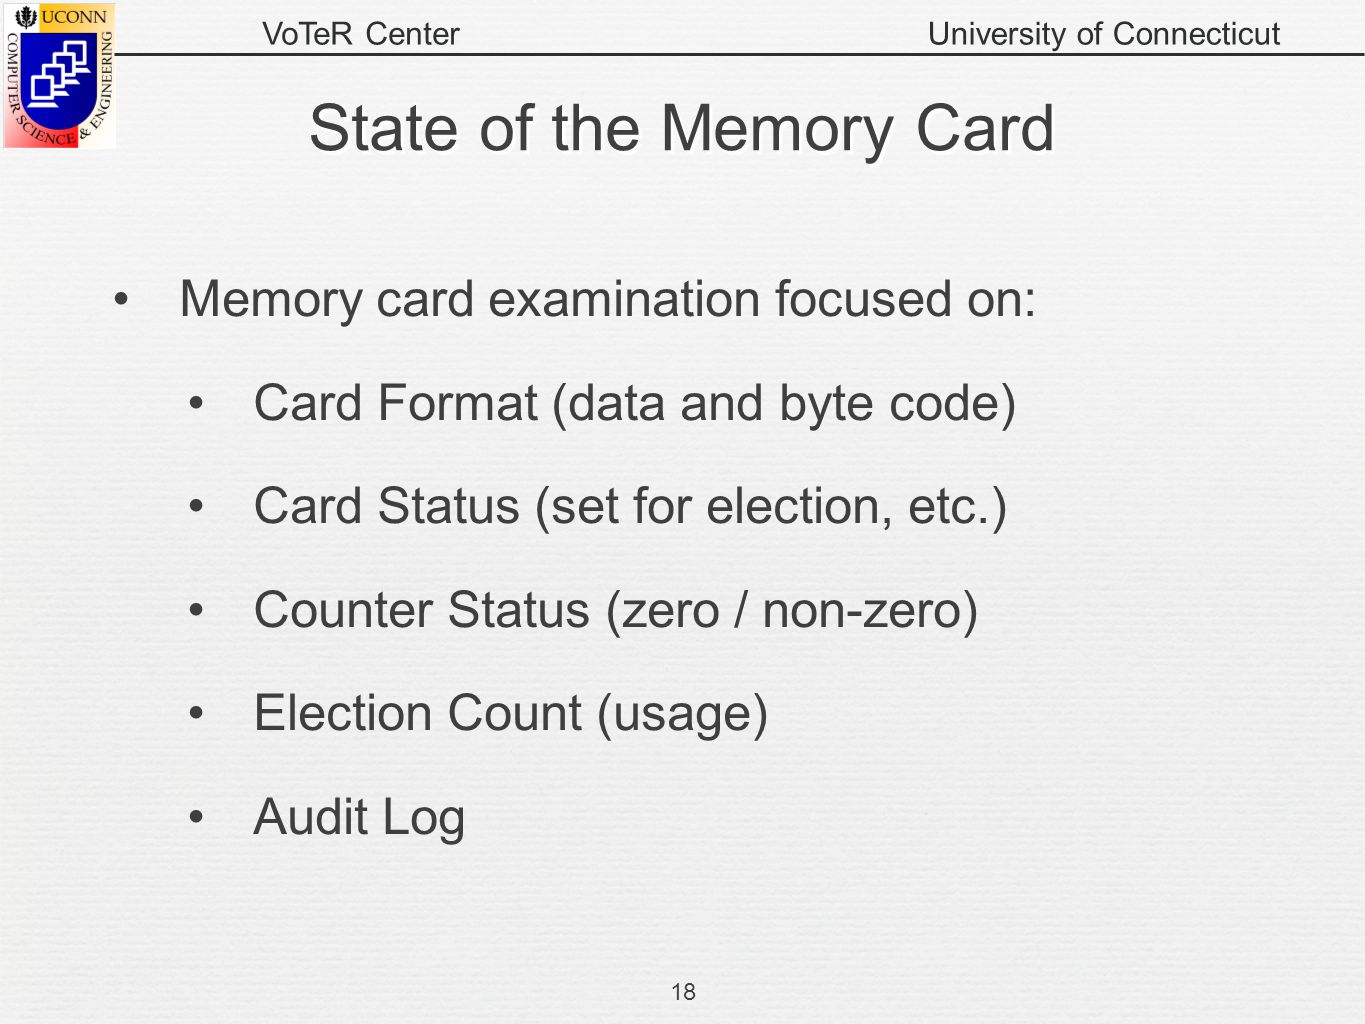 VoTeR CenterUniversity of Connecticut State of the Memory Card Memory card examination focused on: Card Format (data and byte code) Card Status (set for election, etc.) Counter Status (zero / non-zero) Election Count (usage) Audit Log 18